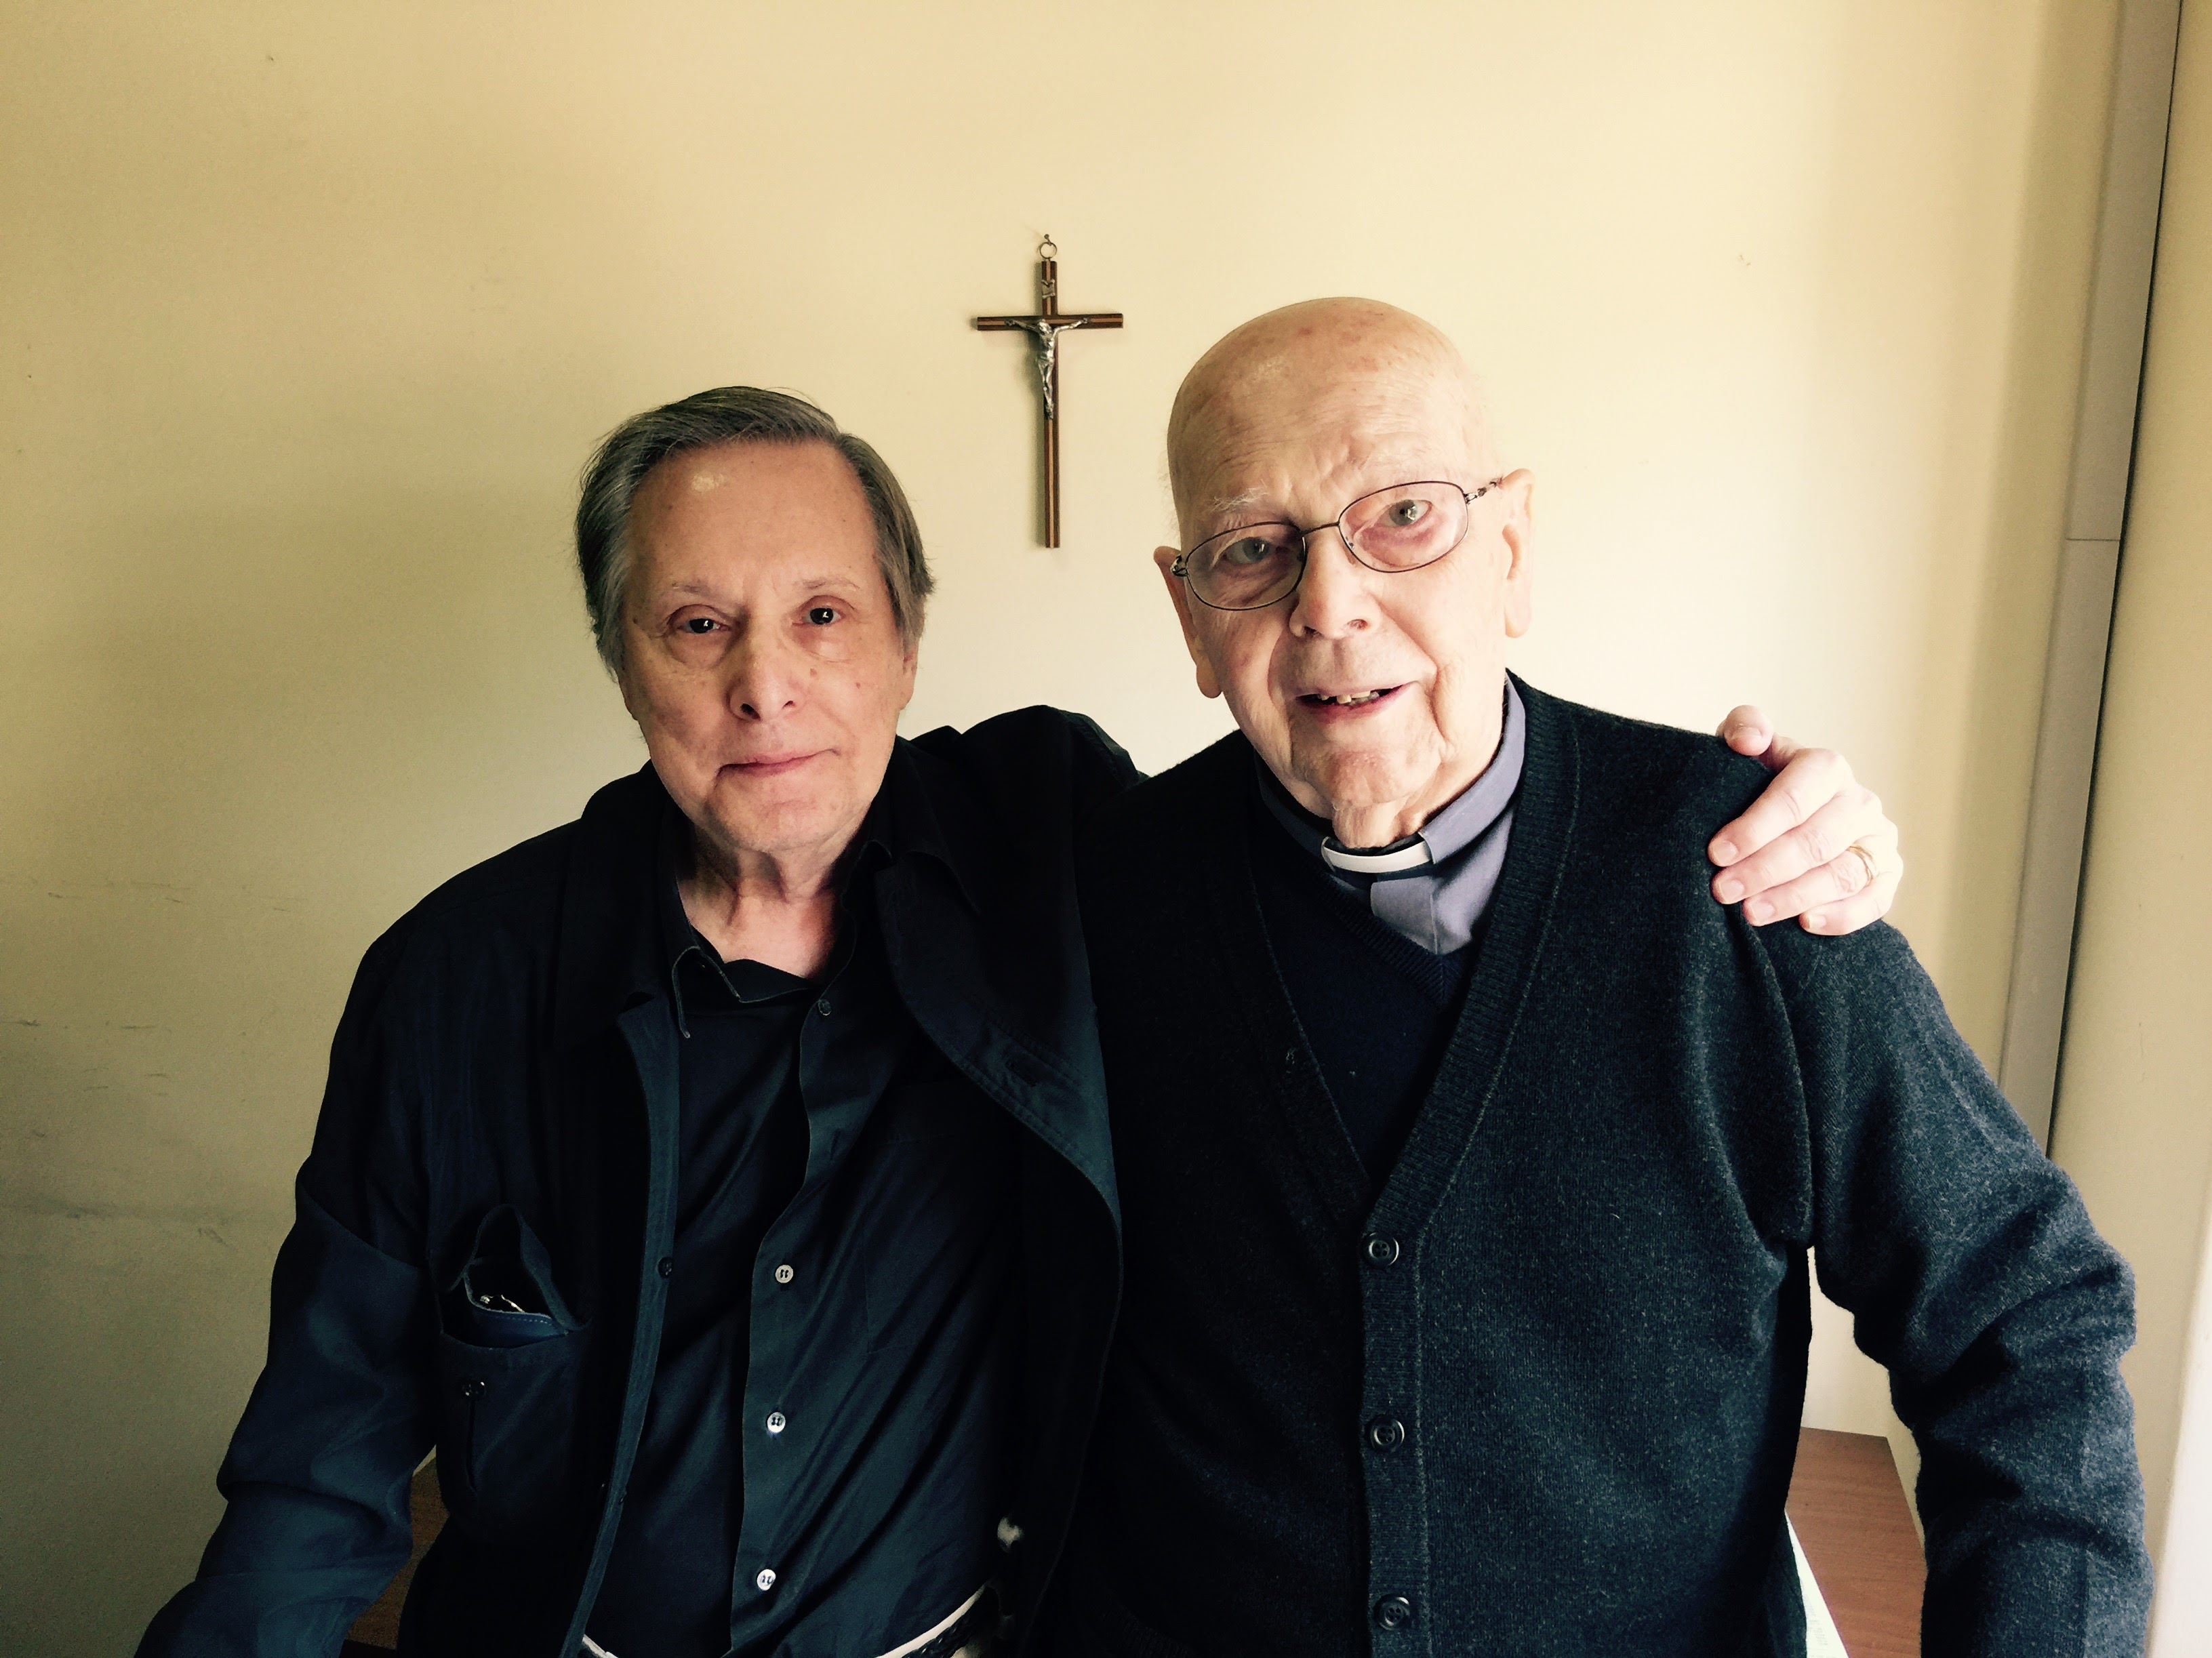 Exorcist Director Makes A New Movie About Exorcism It S A Documentary Npr